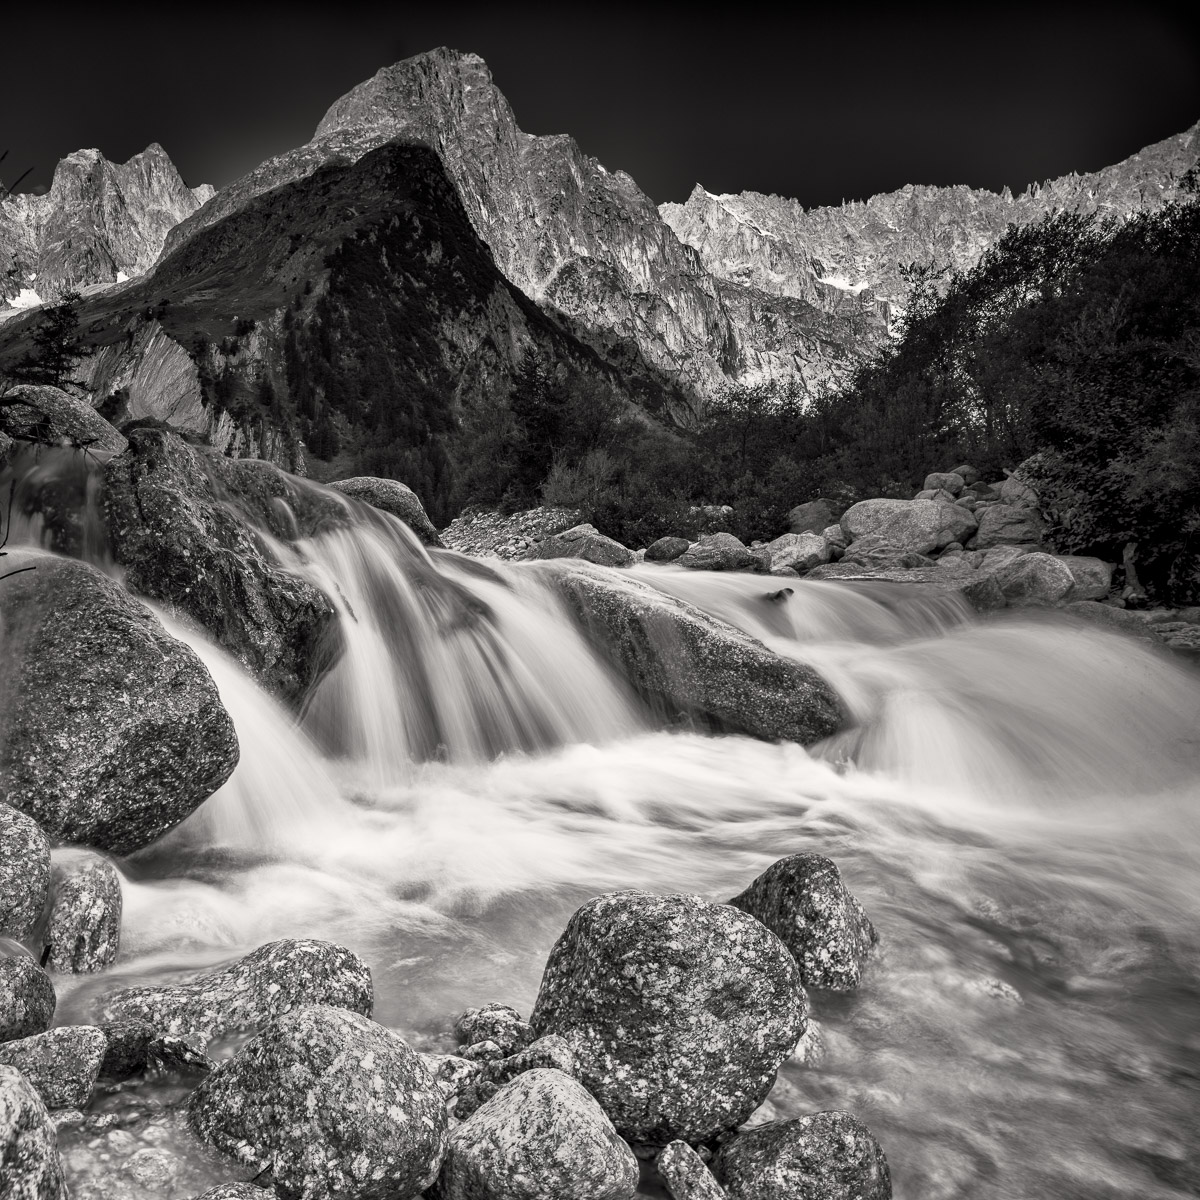 Meltwaters, Switzerland -  Nikon D810 | Nikon 24mm PC-e Tilt Shift lens shifted 7 degress | 24mm f/8.0 0.4 sec ISO 64 | Manfrotto Tripod, 3 stop Formatt Hitech filter | B+W Circular Polariser